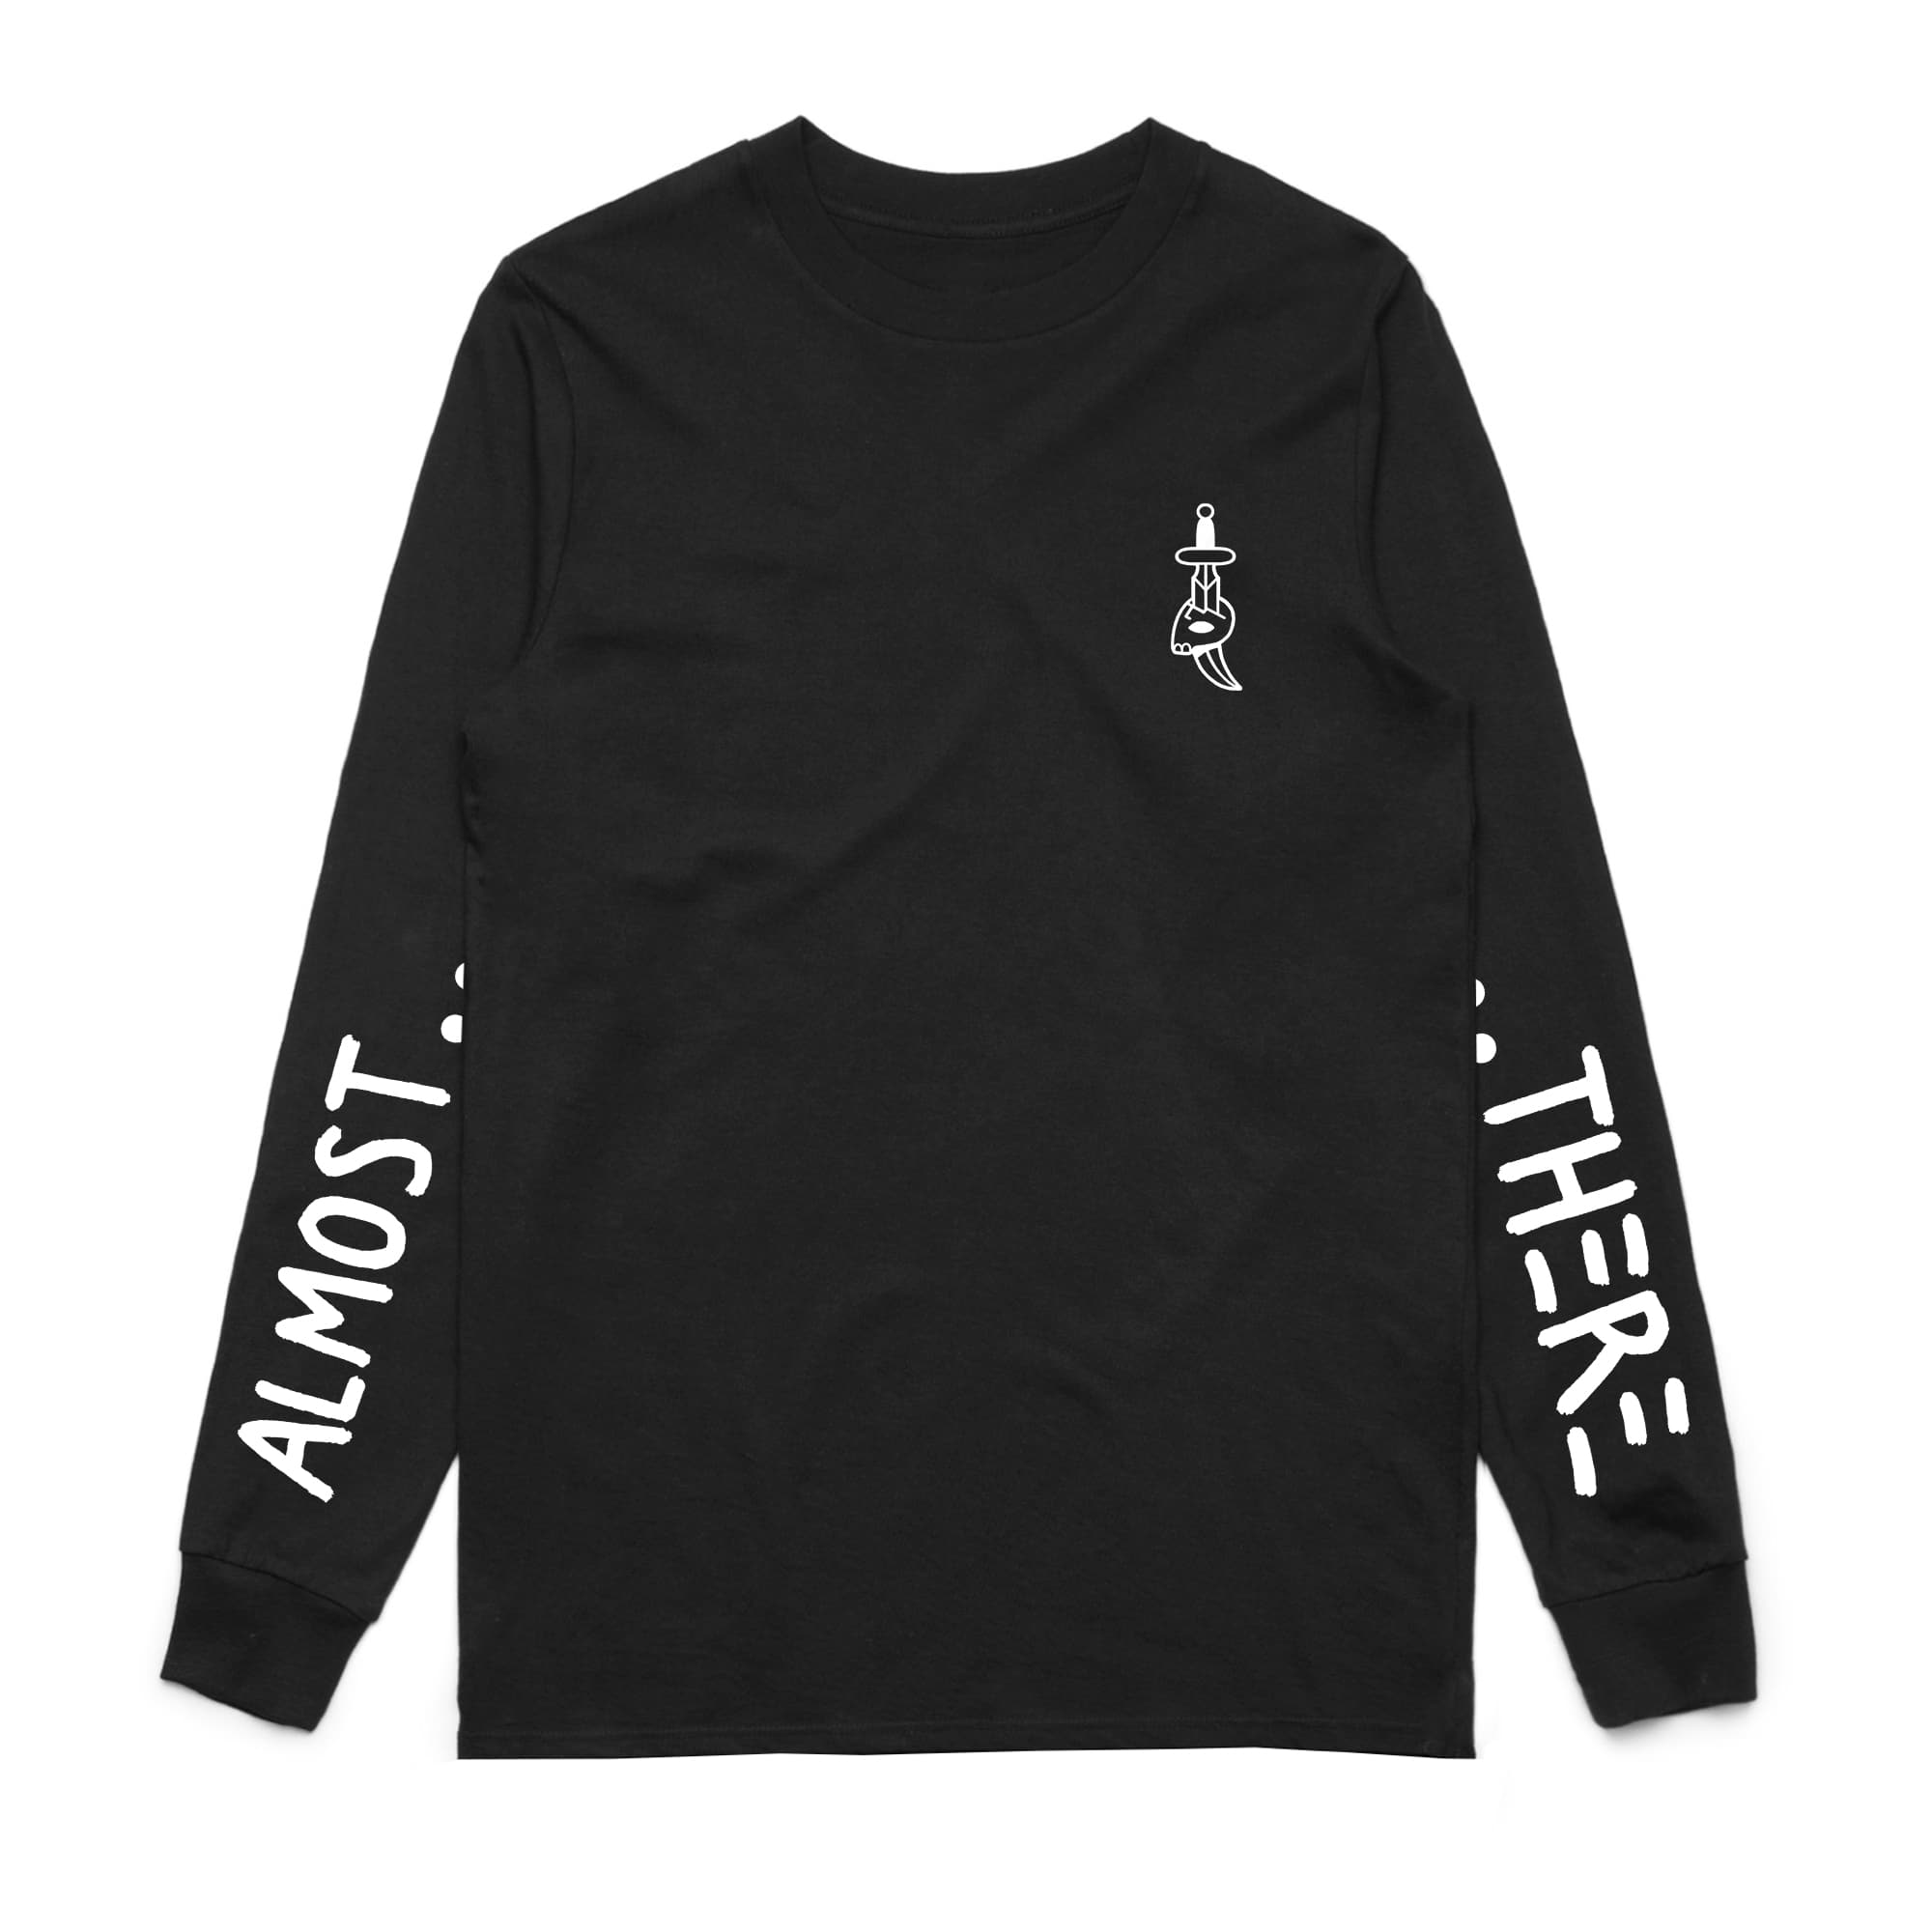 Andy Mineo 'The Sword' Long Sleeve